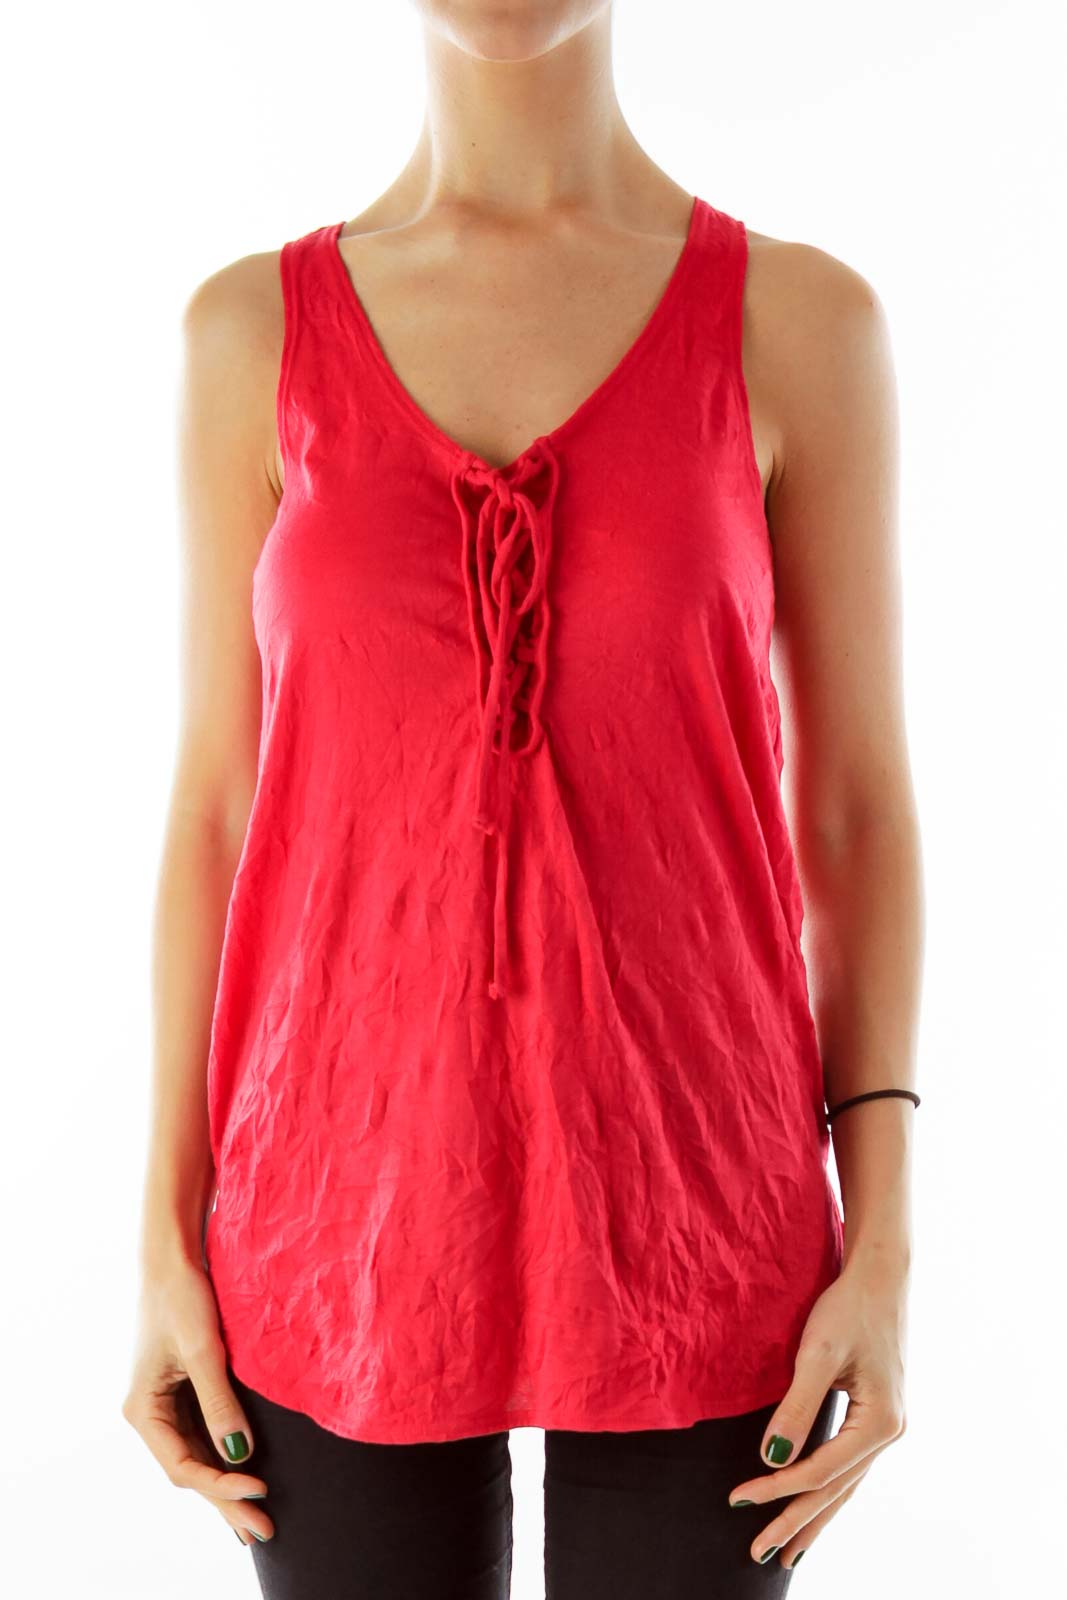 Red Knit Tank Top Front